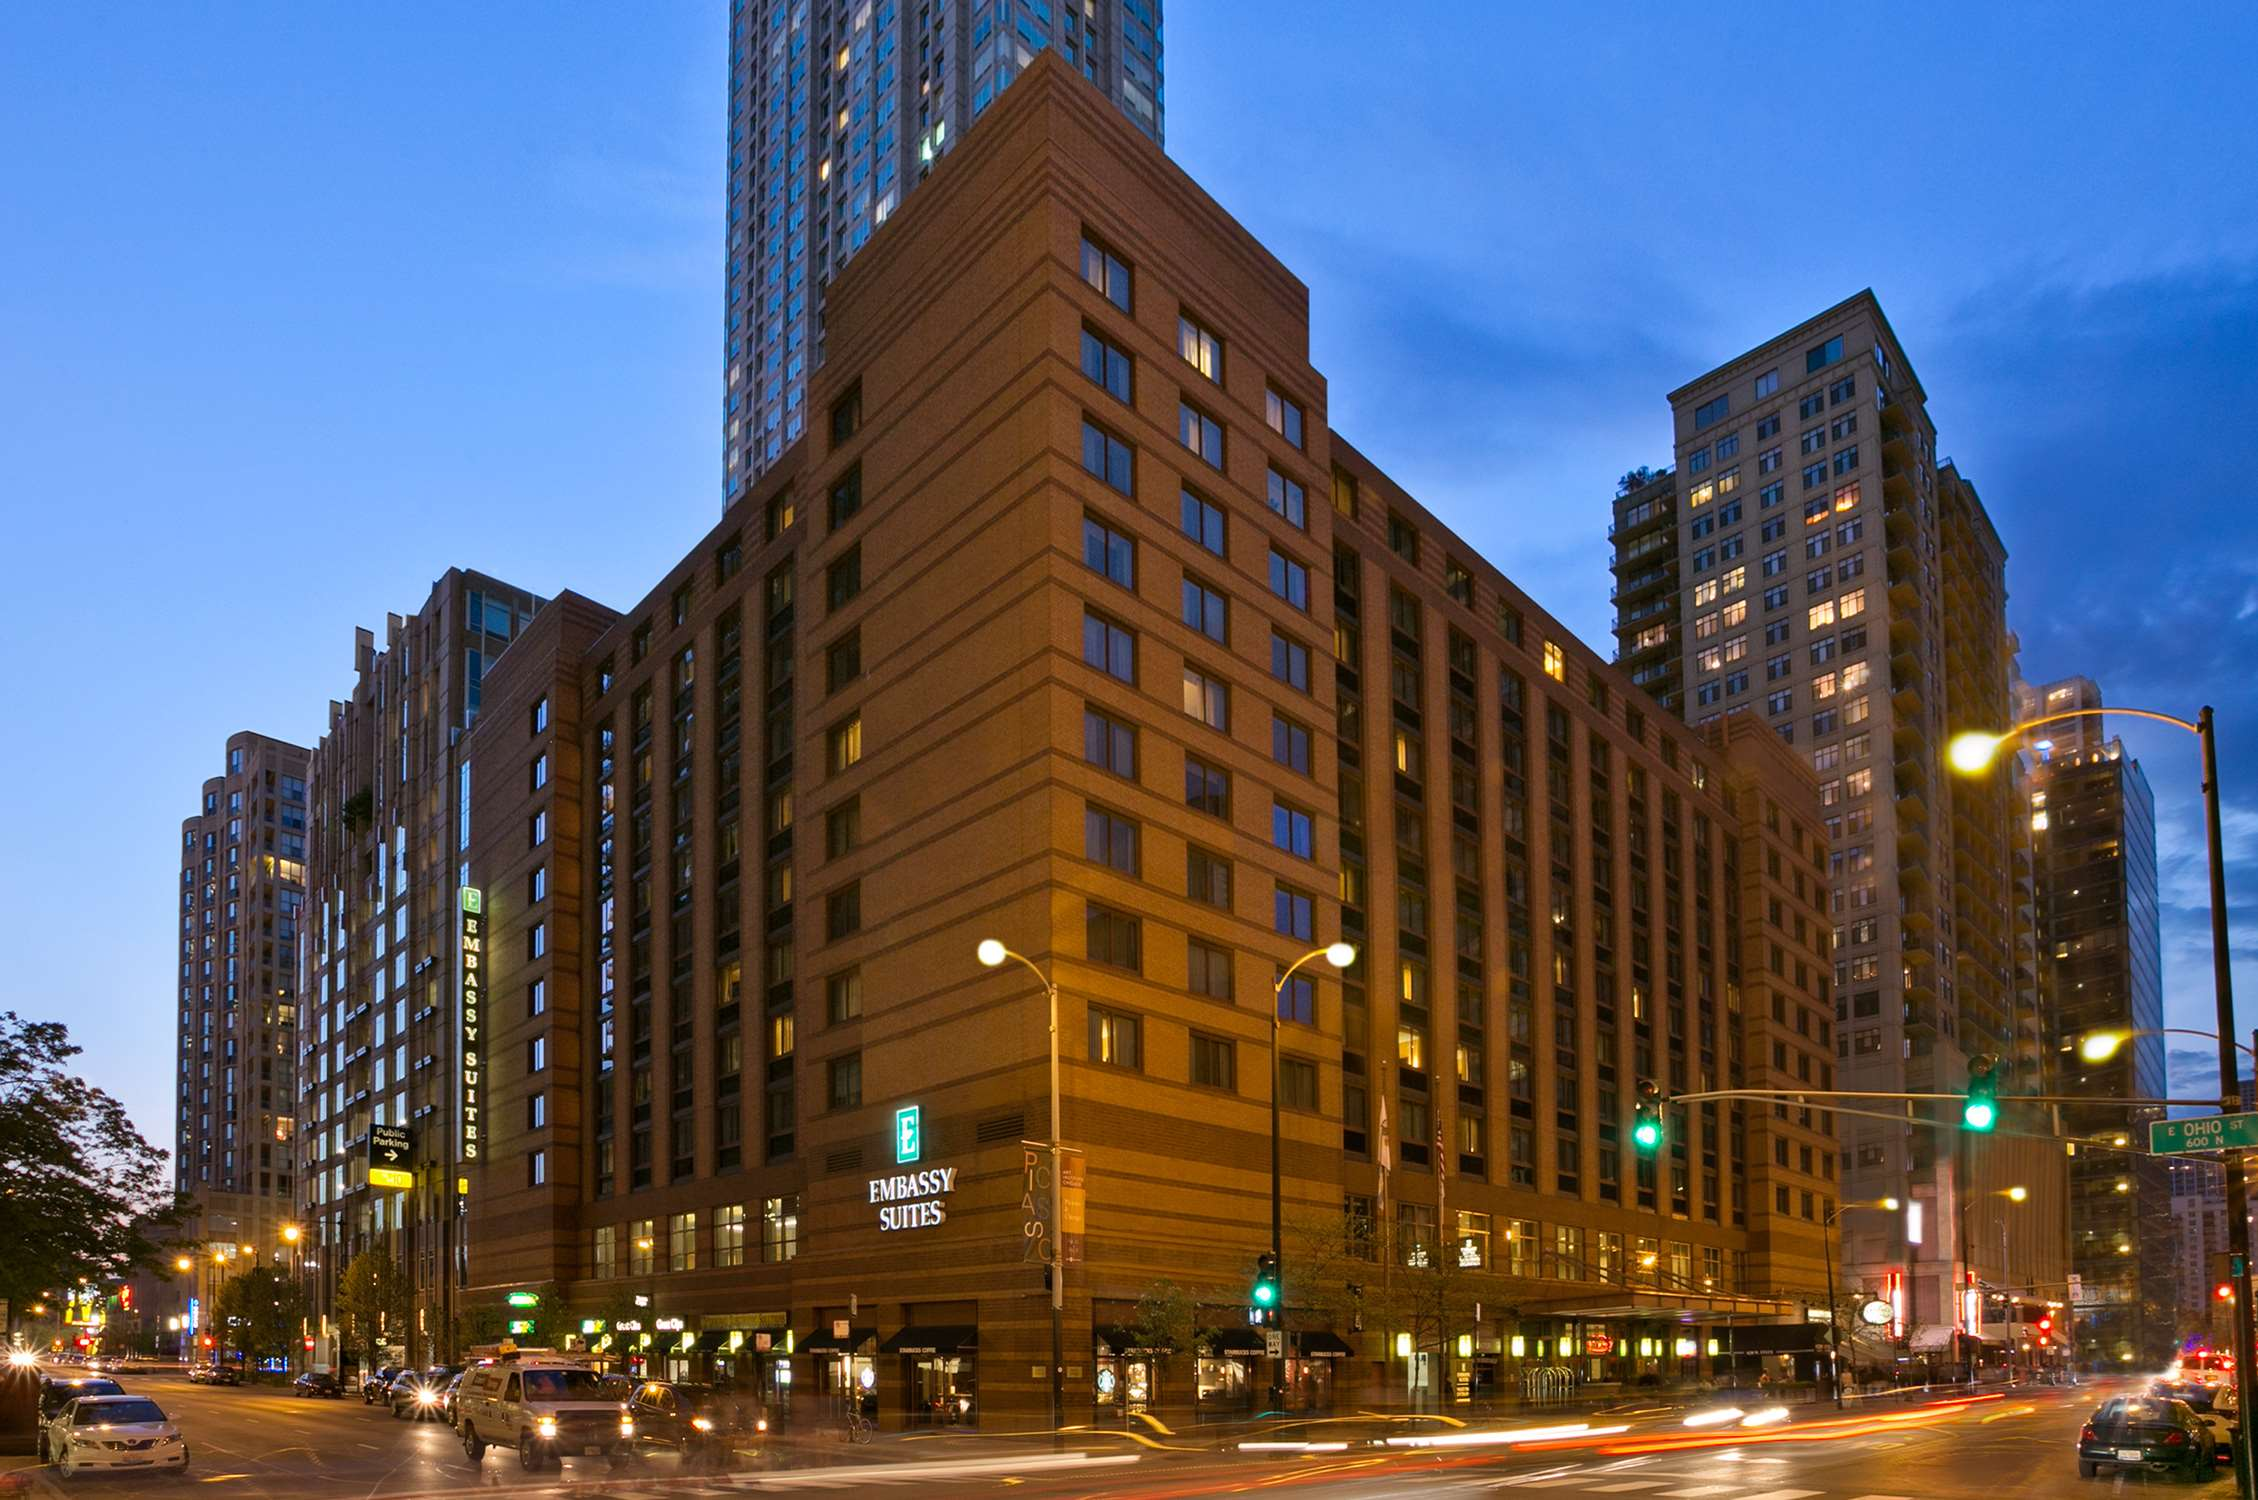 Embassy Suites by Hilton Chicago Downtown image 0